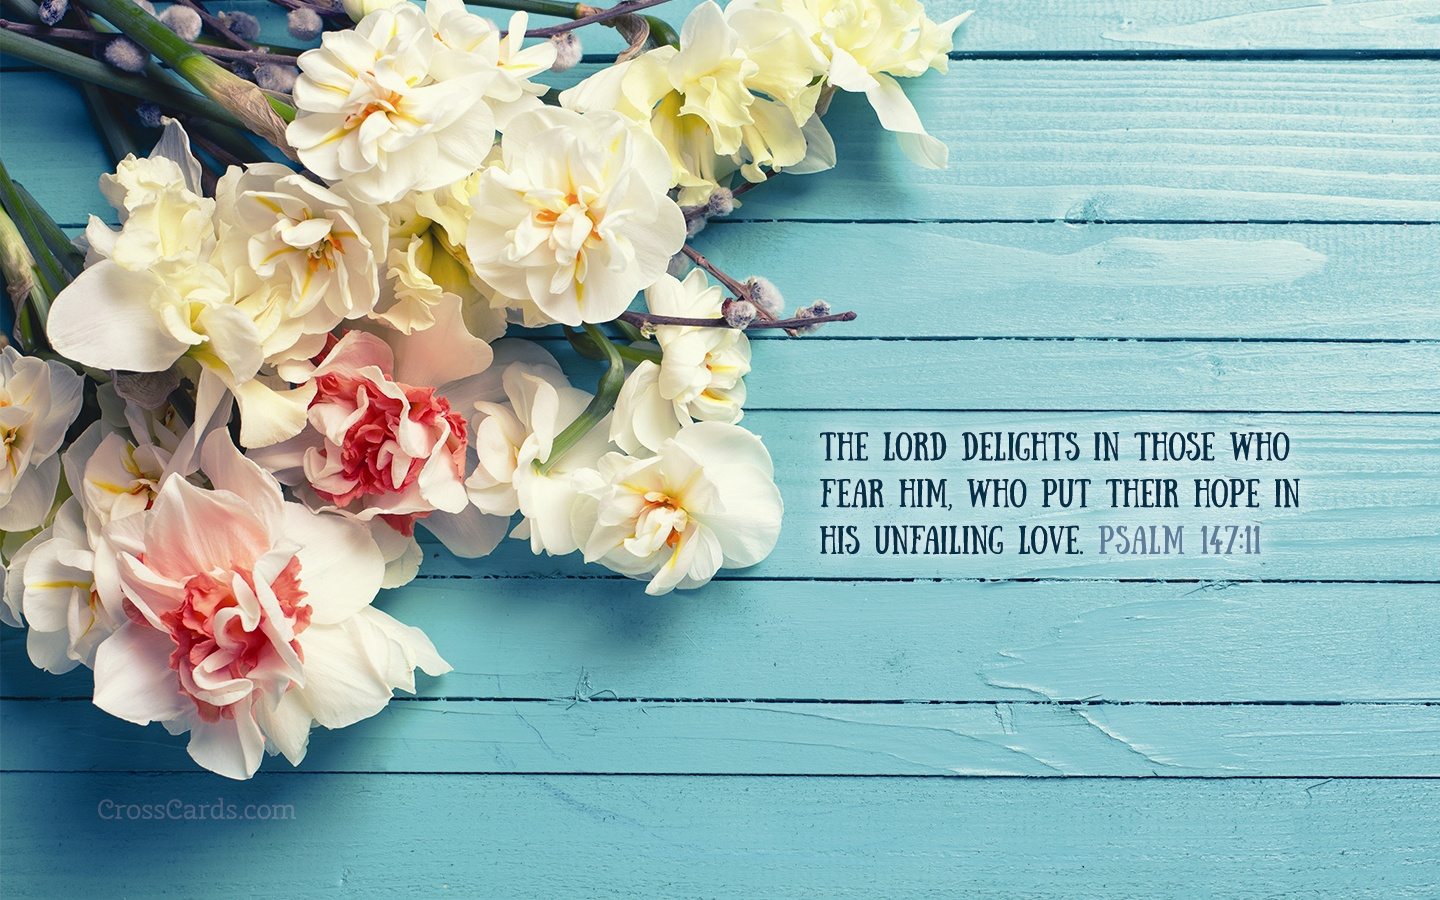 psalm 147:11 wallpaper - free flowers desktop backgrounds